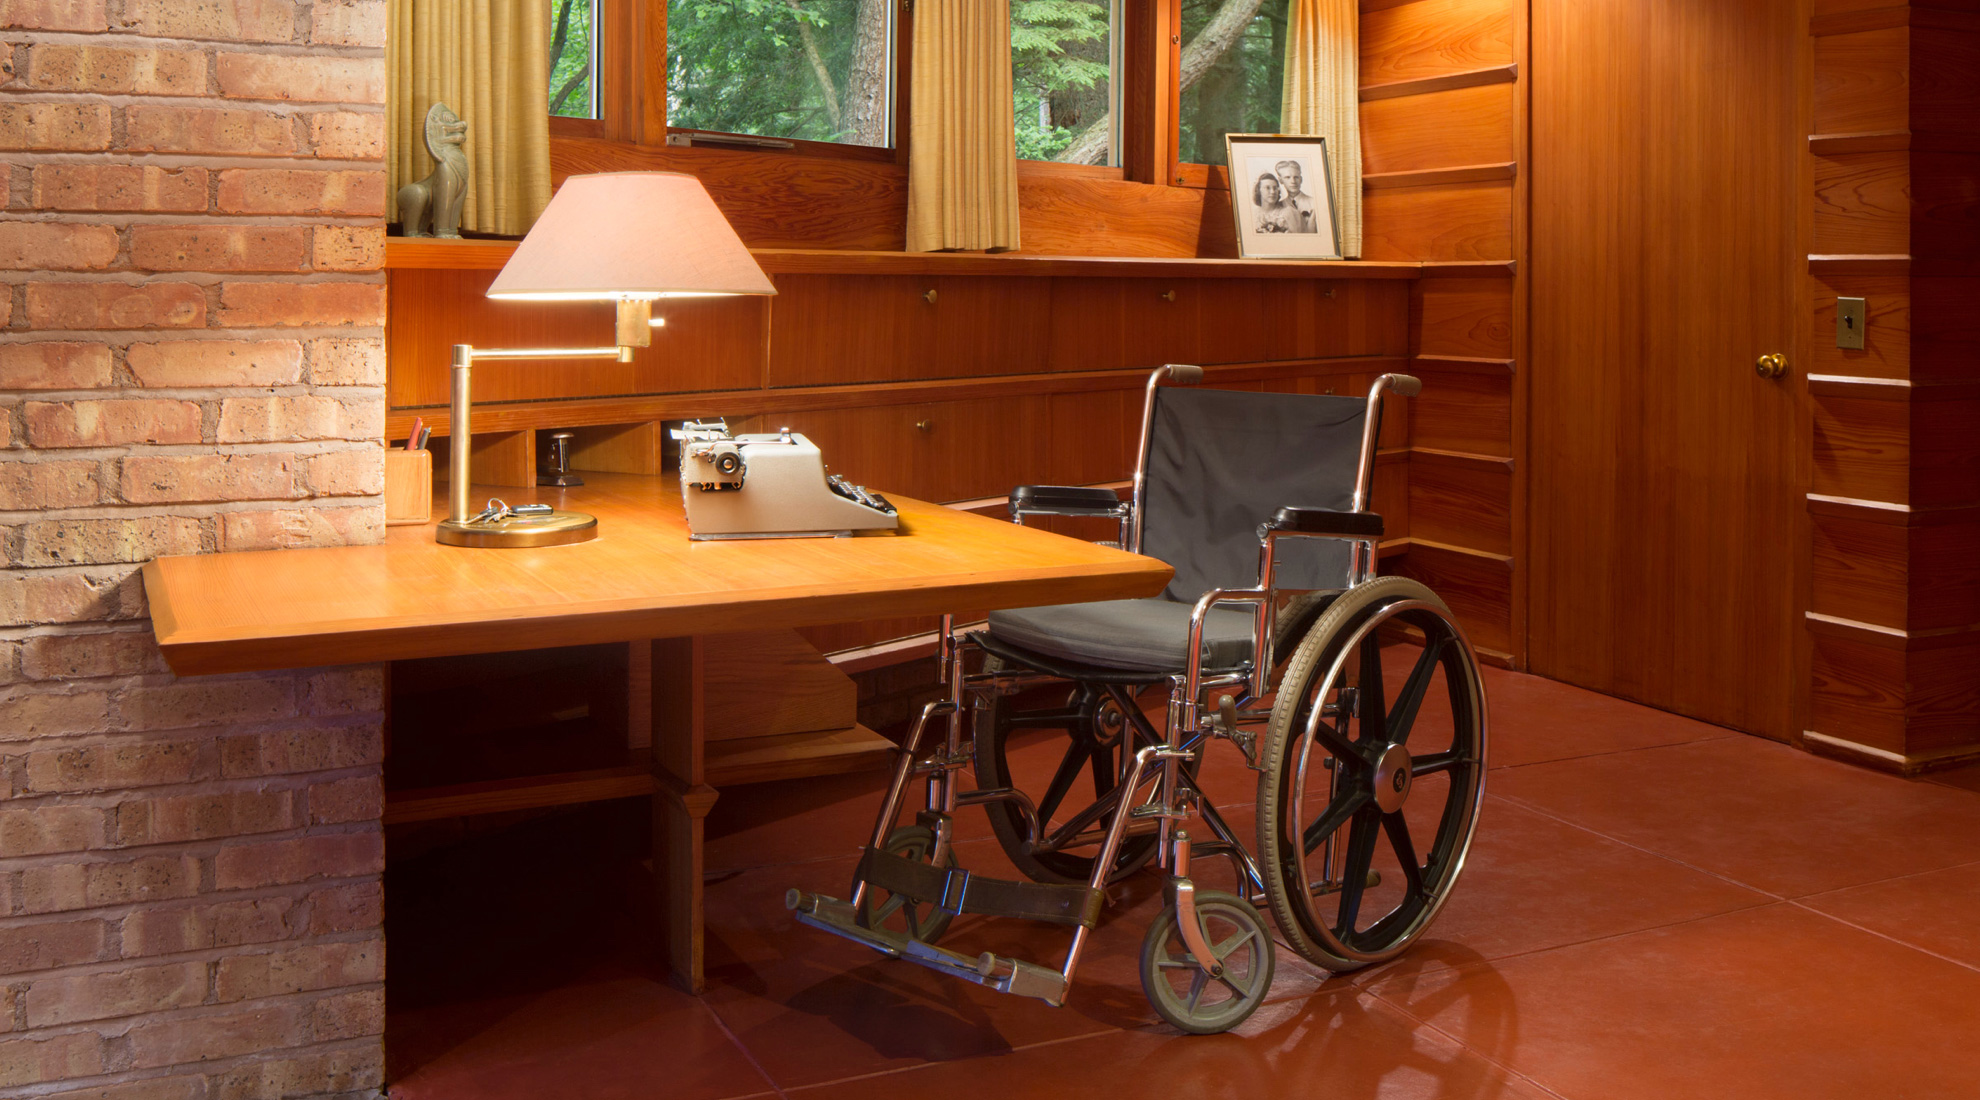 A custom-designed writing desk with clearance for a wheelchair and a framed portrait of the homeowners on a shelf nearby.